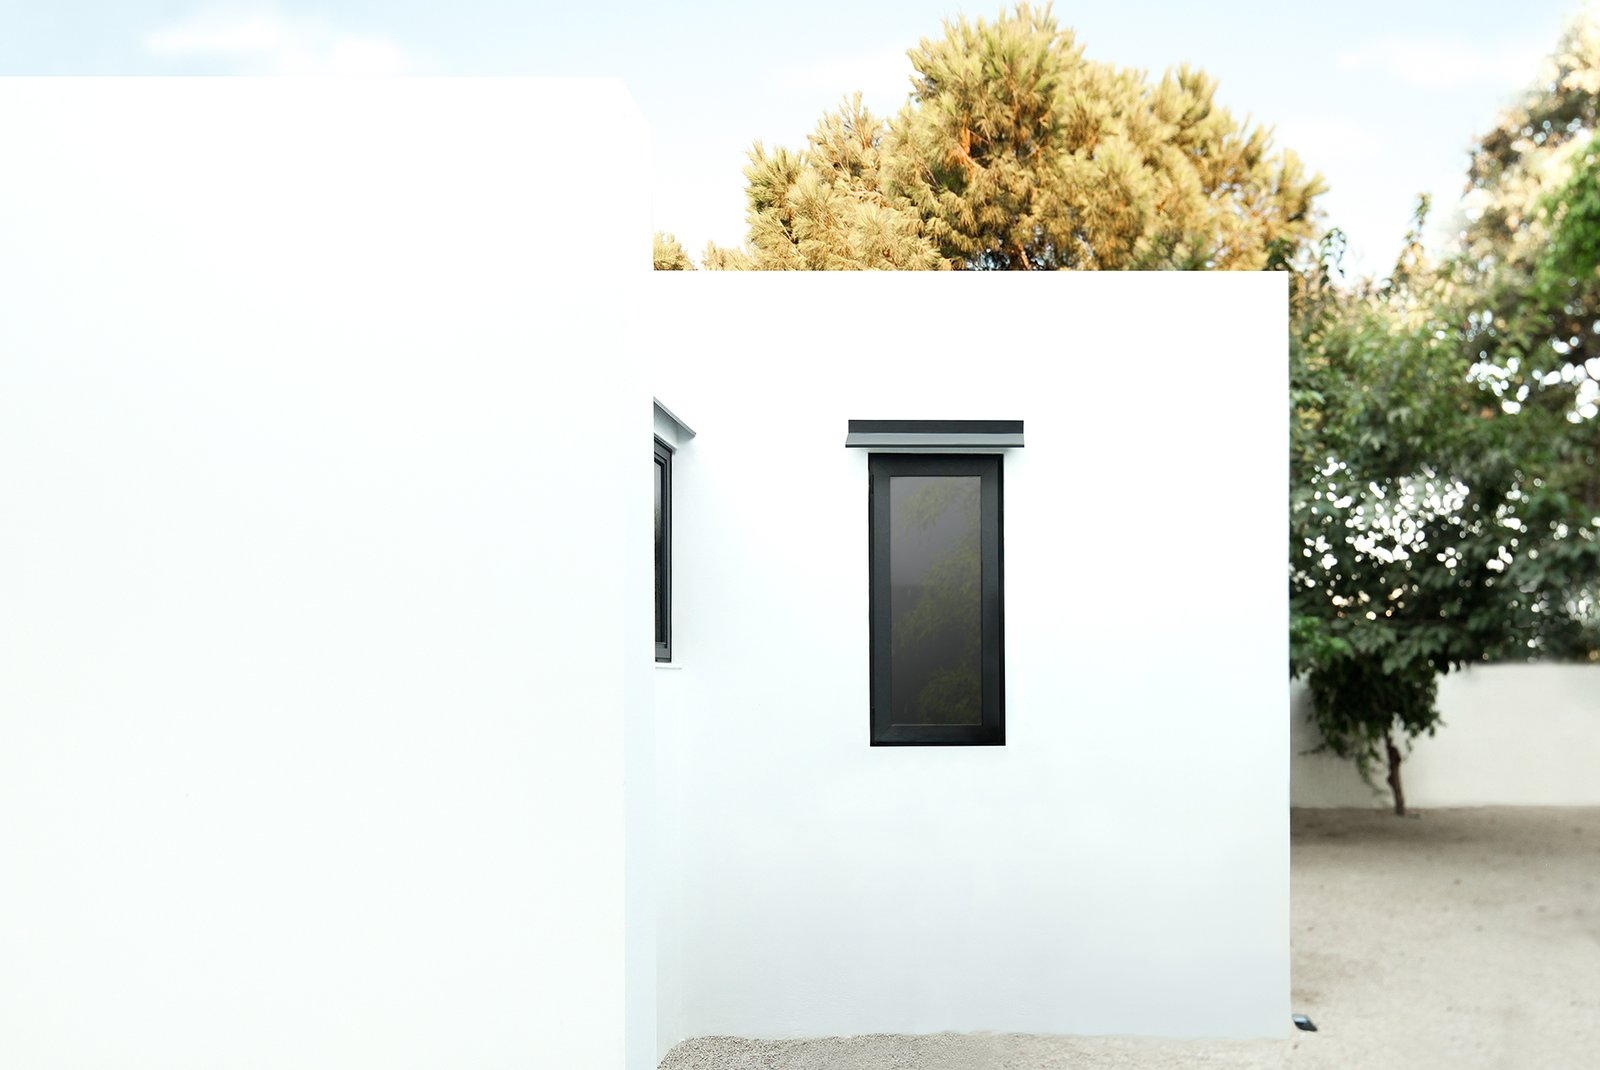 The home's whitewashed exterior references Greek island architecture.